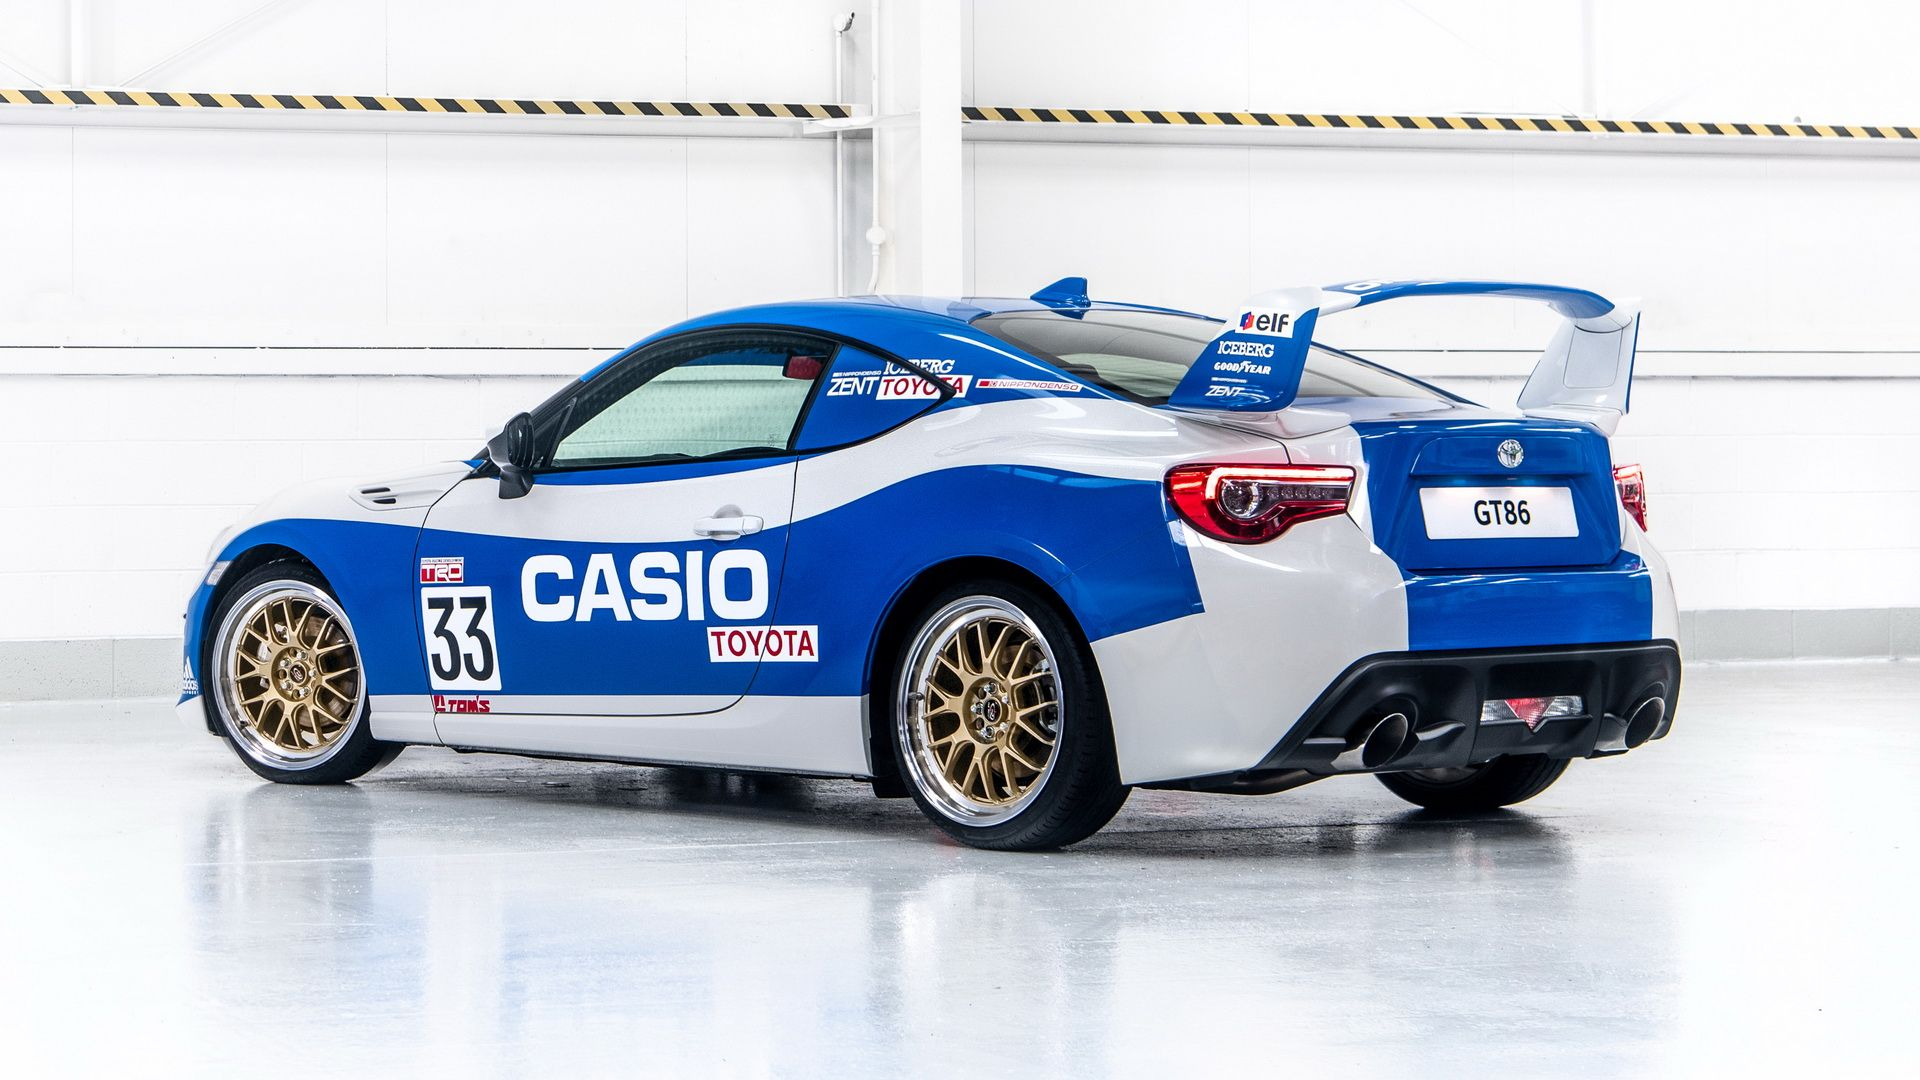 toyota-gt86-heritage-livery-24-hours-of-le-mans-4